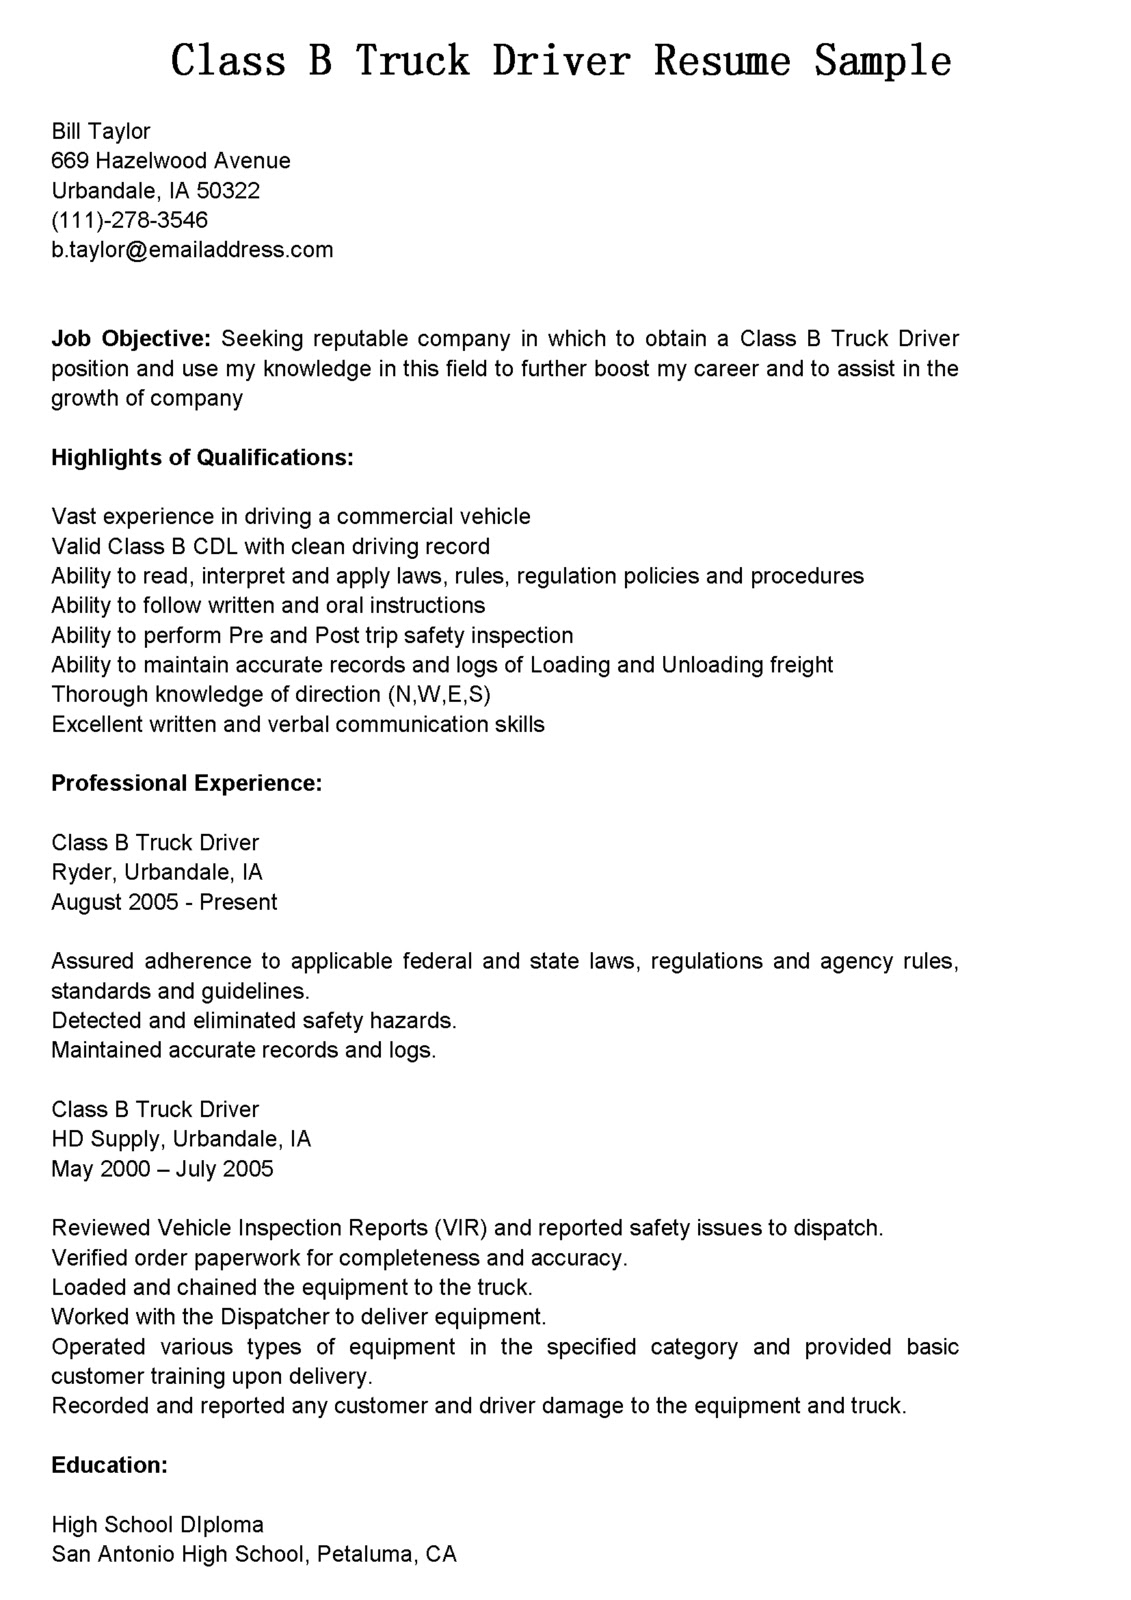 Cl B Truck Driver Resume Sample